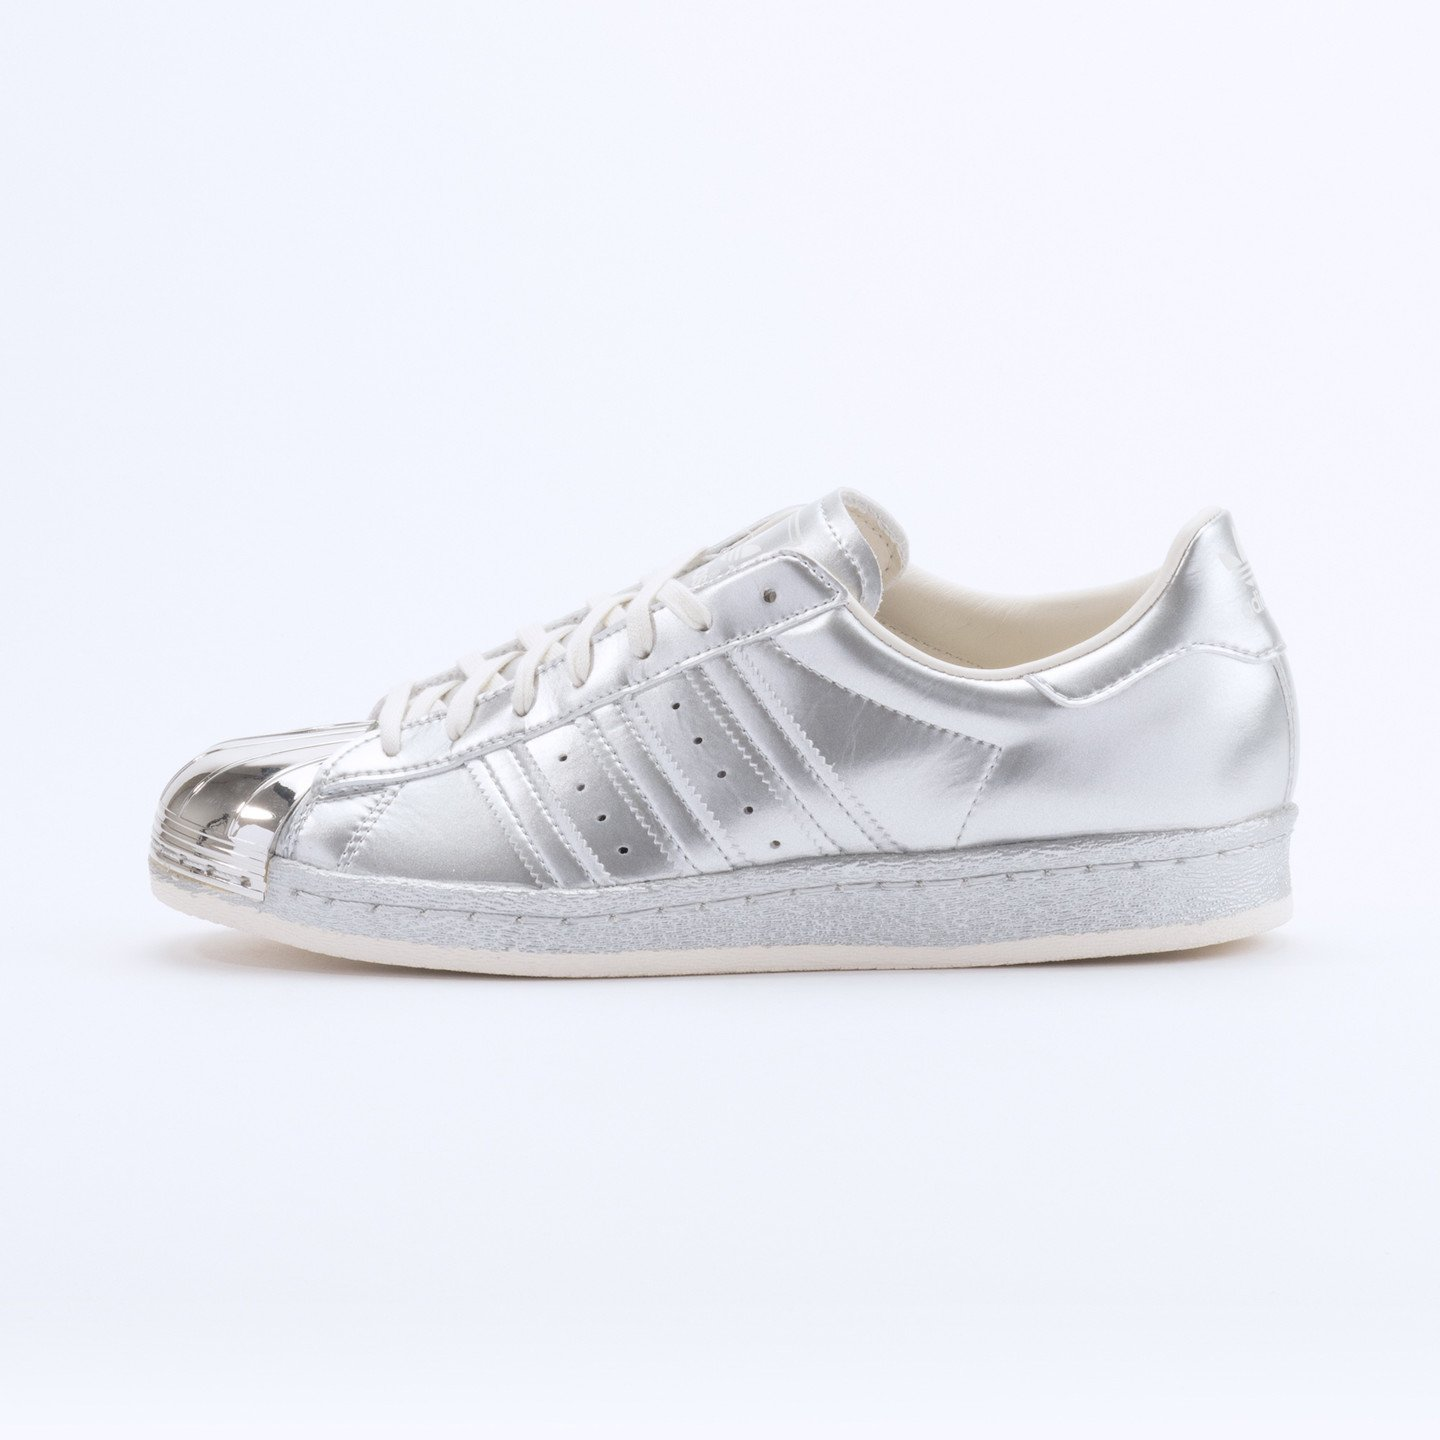 Adidas Superstar 80s Metallic Pack Silver Metallic S82741-38